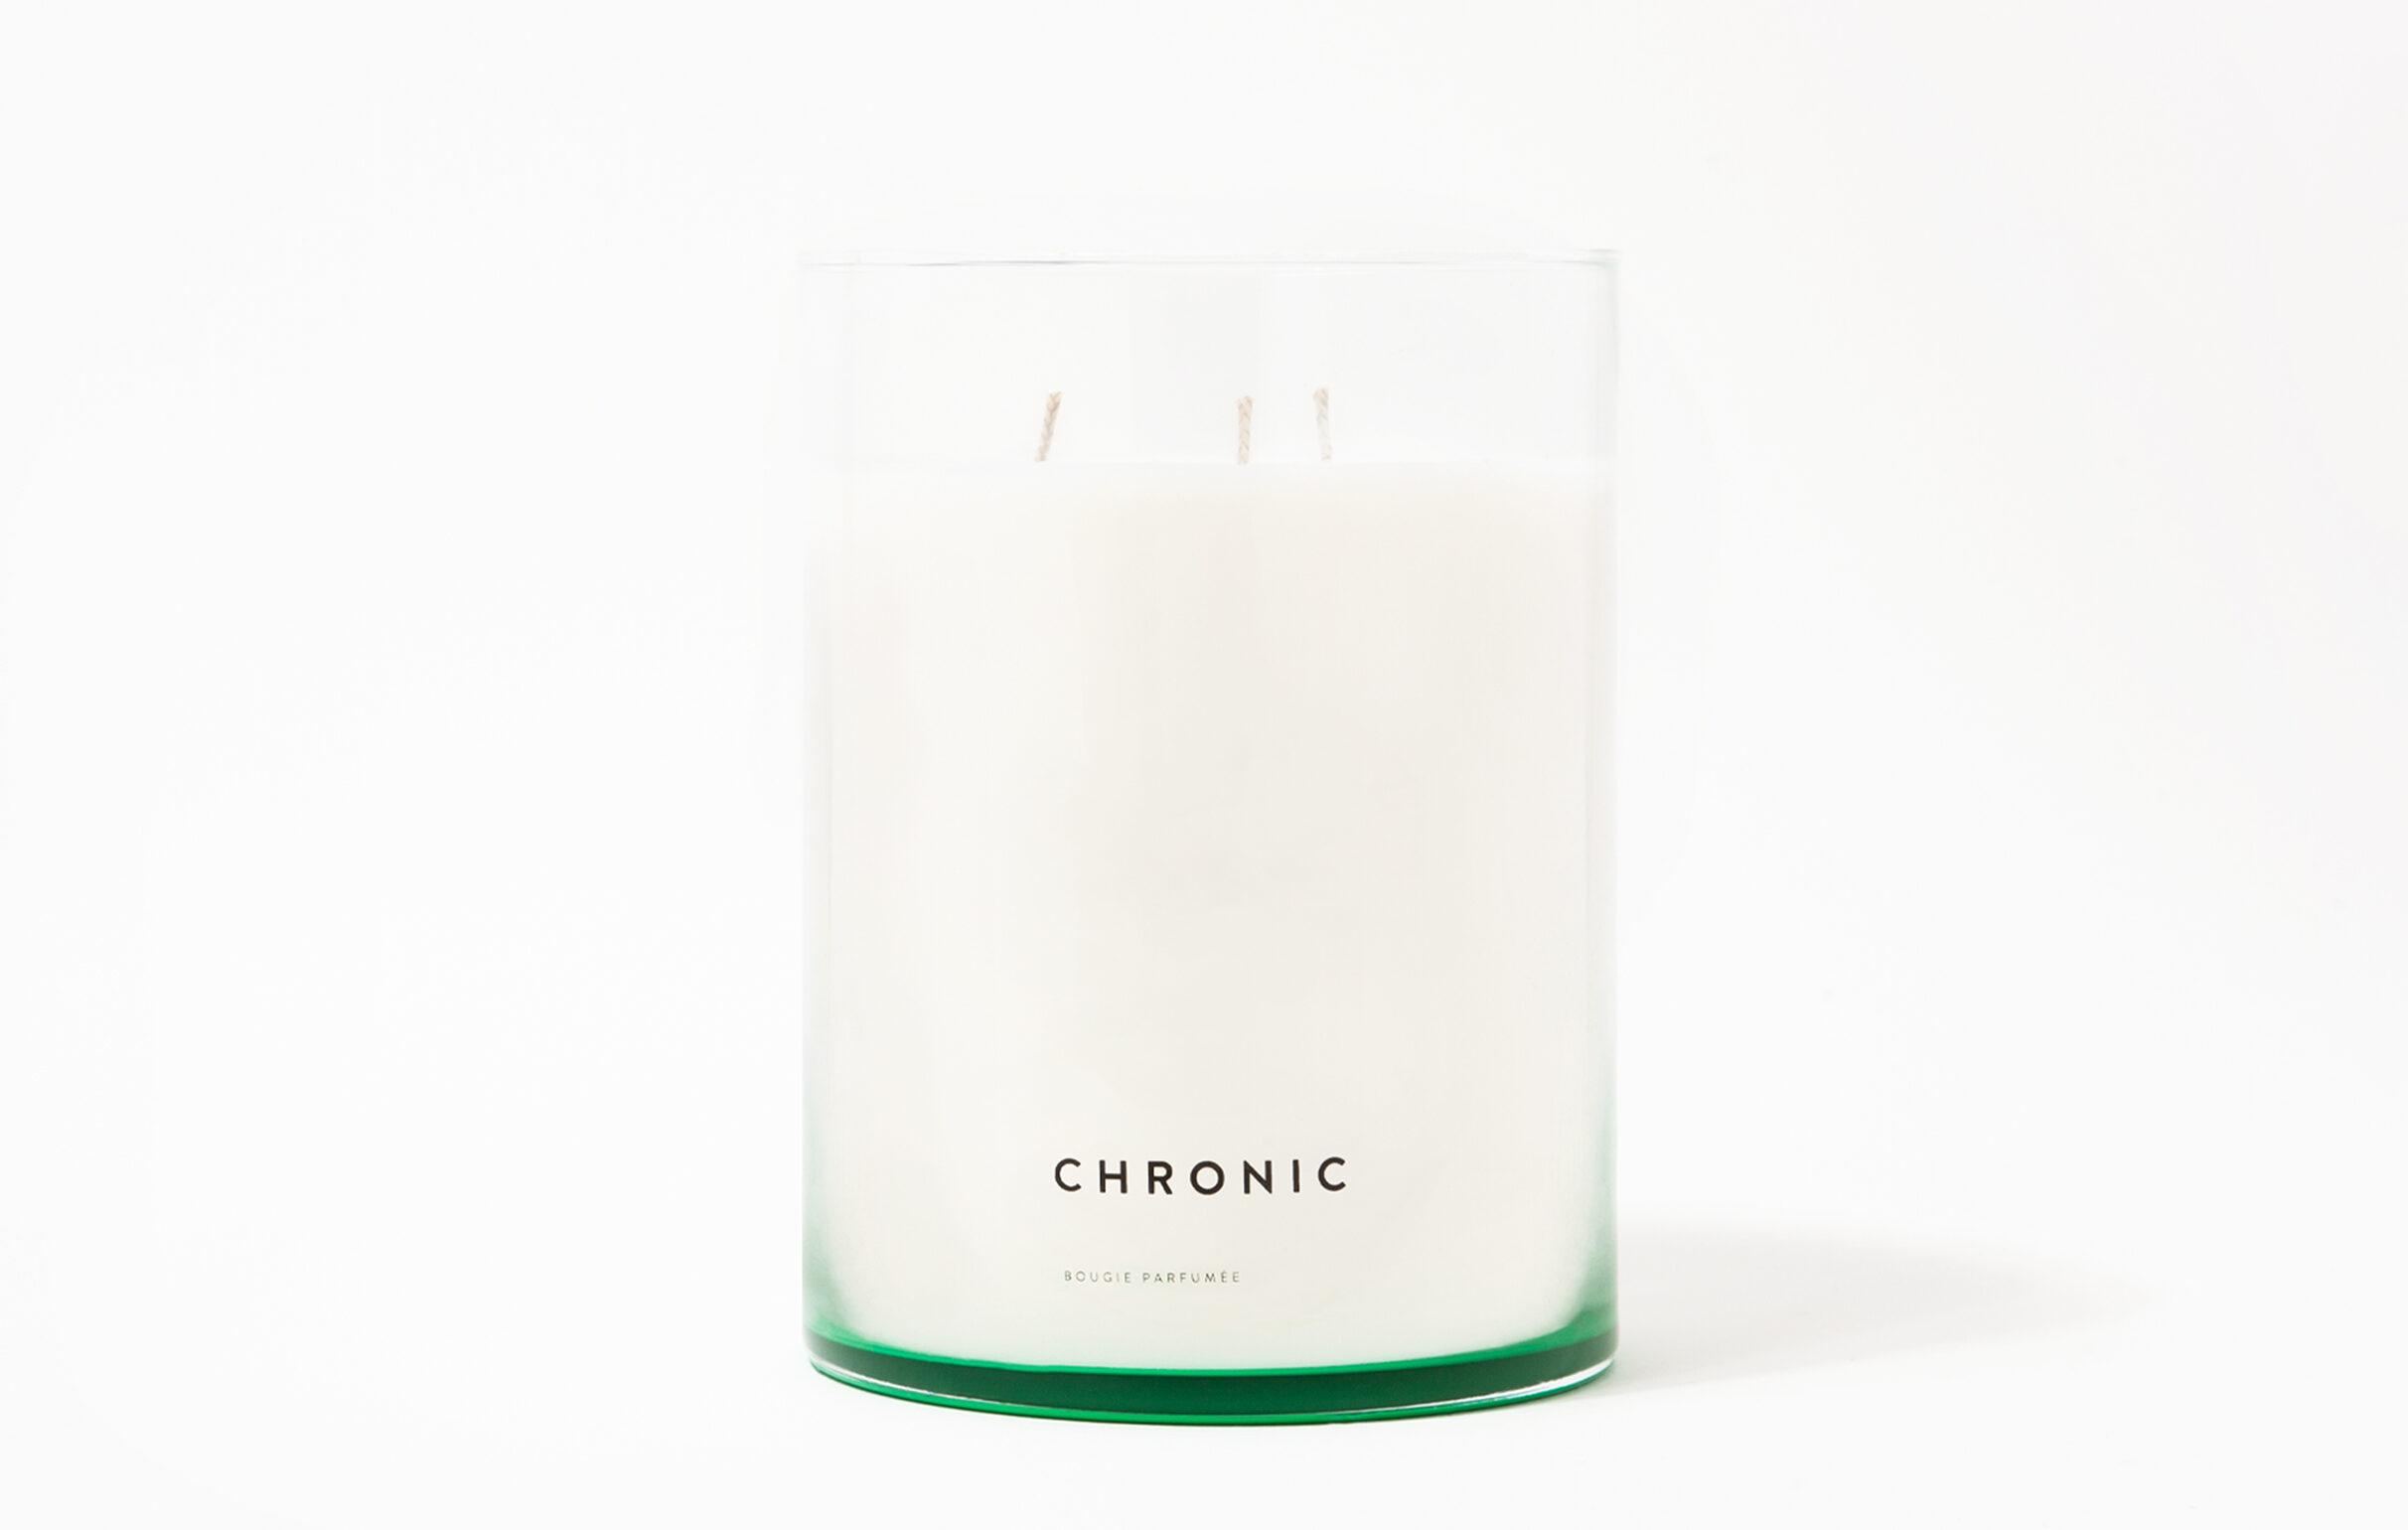 Chronic is an acknowledgement of the cannabis cultivation in Southern California during the 90s. Chronic scented candle fragrance notes include Bitter Grapefruit, Cannabis Accord and Moss.